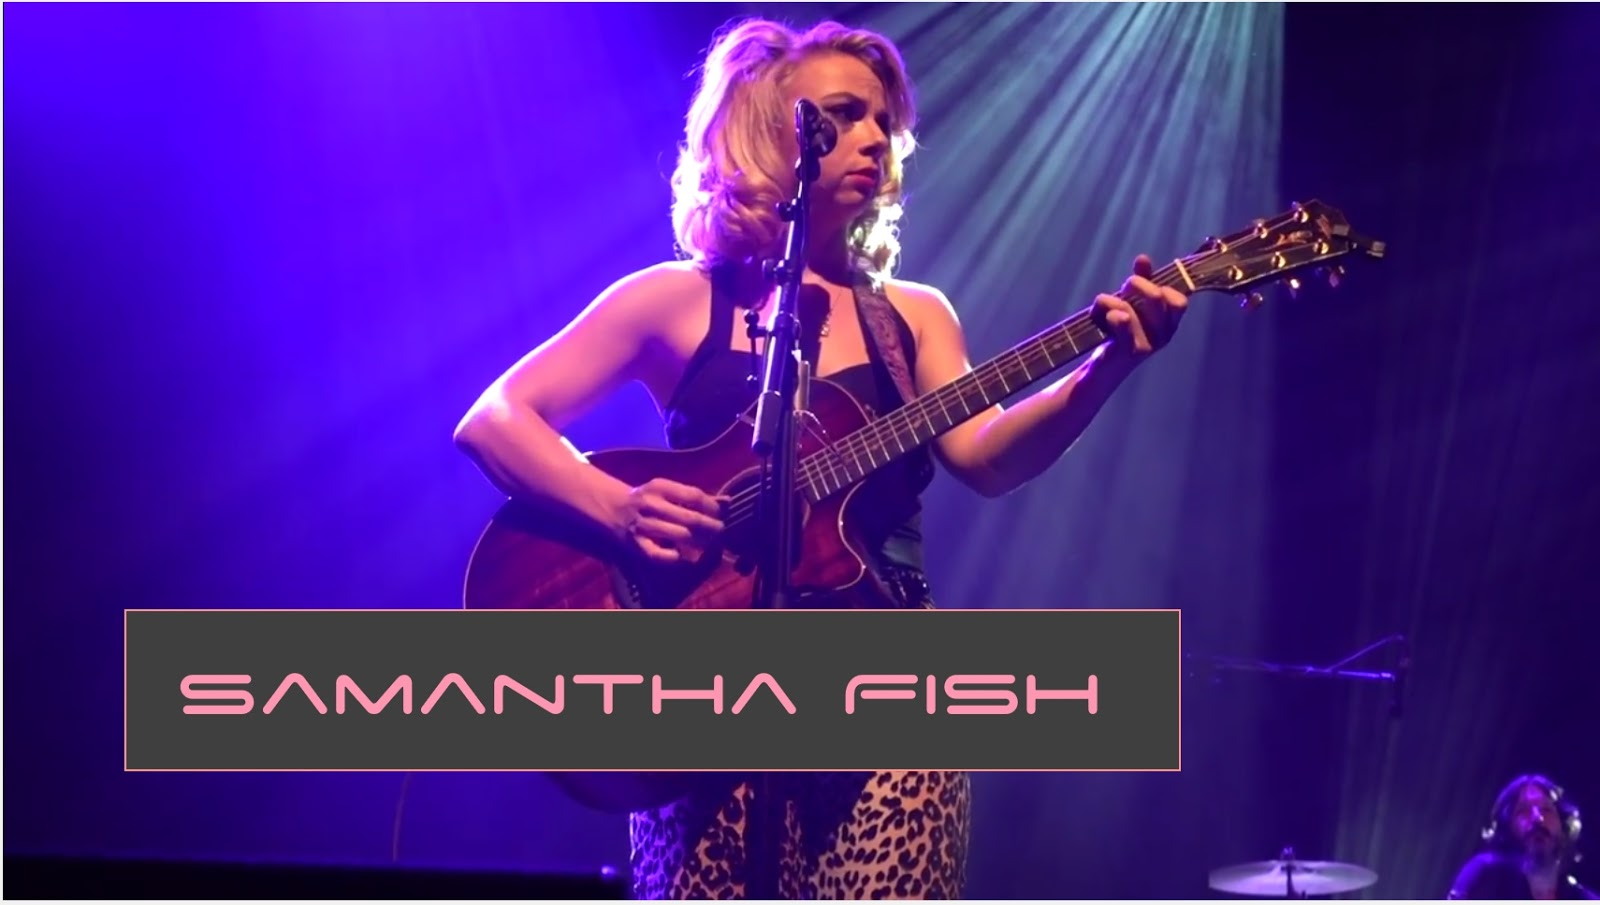 Samantha fish series from l arcadium annecy france 2017 for Samantha fish chills and fever